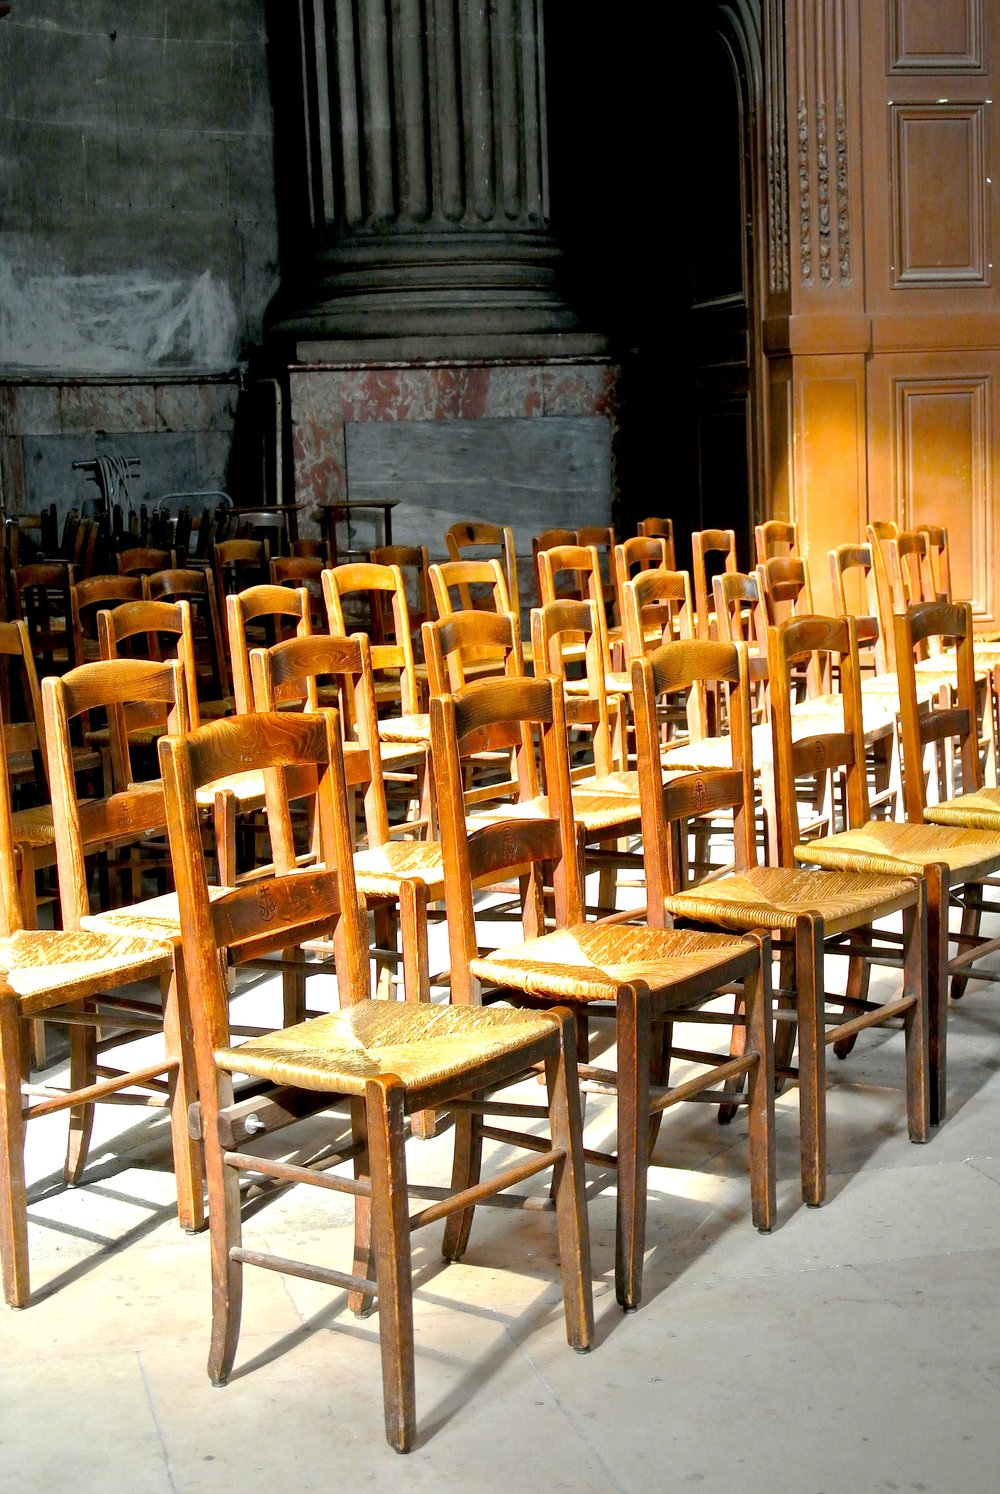 …just row after row of small wooden chairs